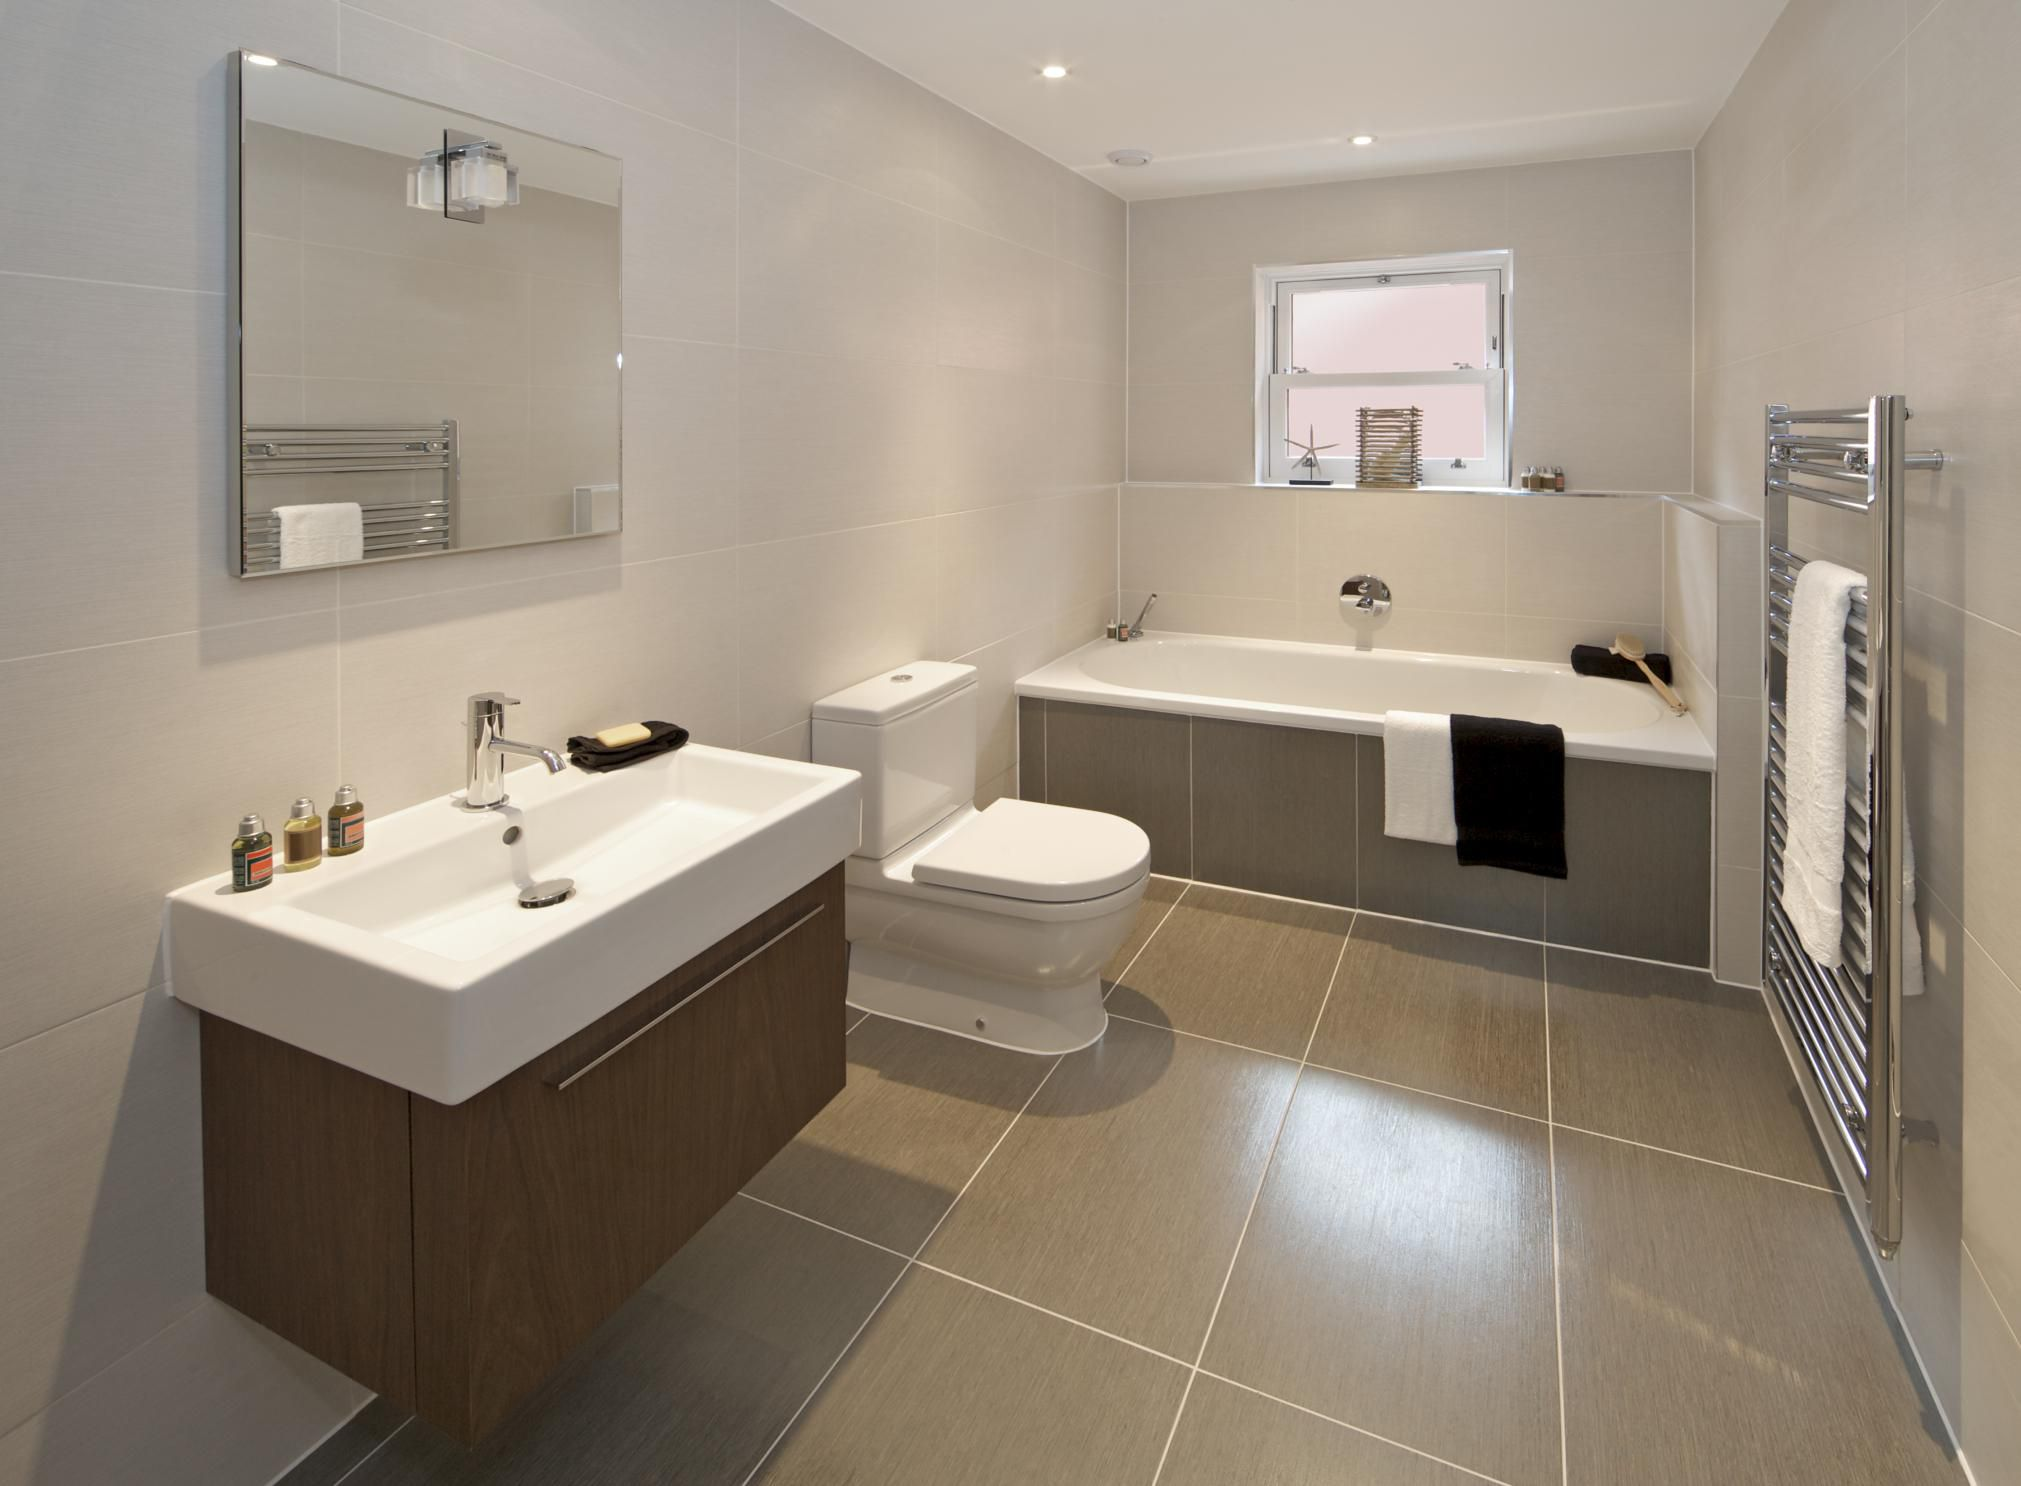 Advice On Best Tile Size For Bathrooms